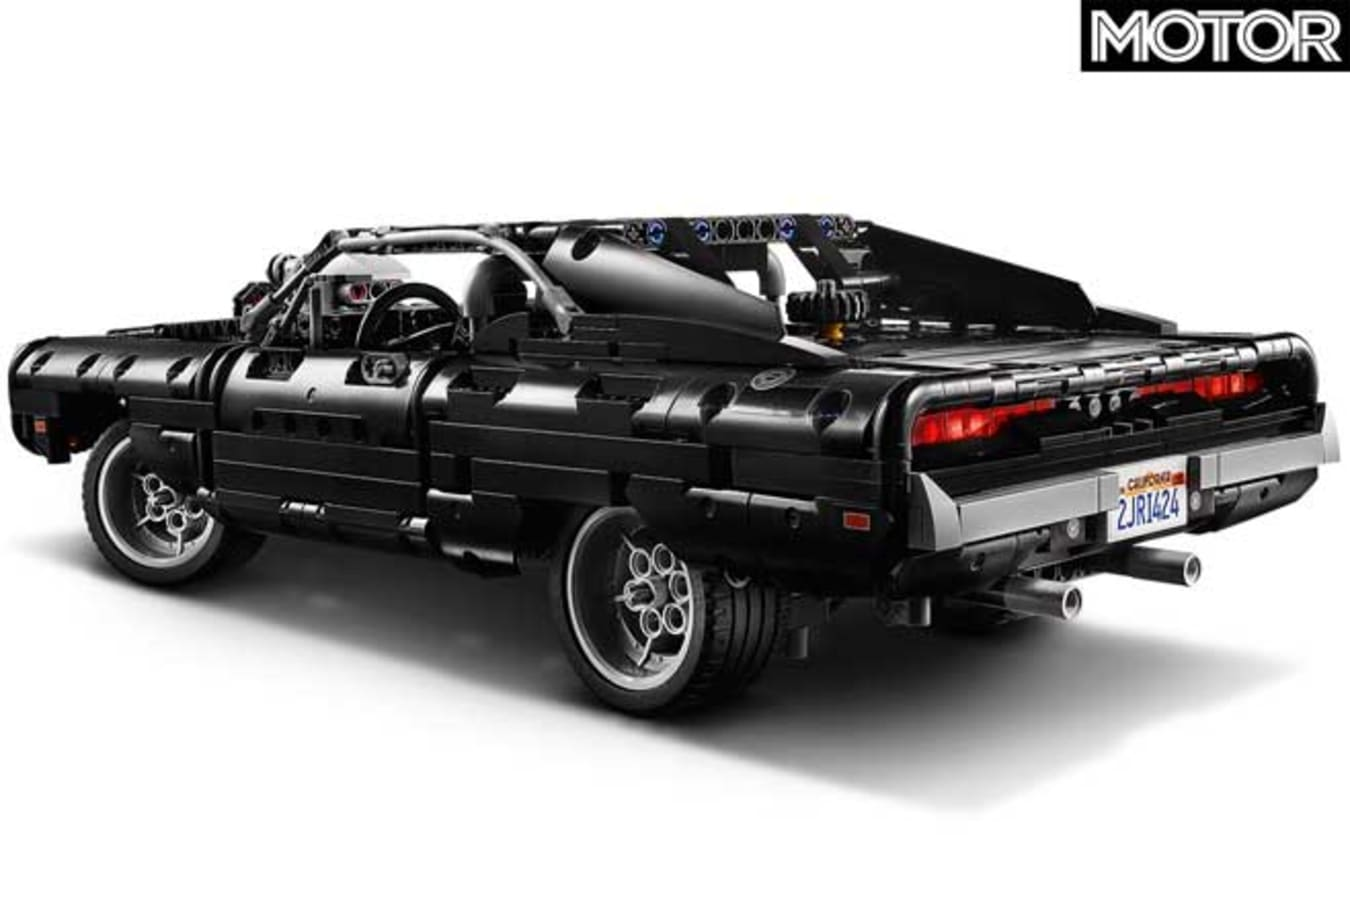 Lego Technic Fast Furious Dodge Charger Rear Jpg